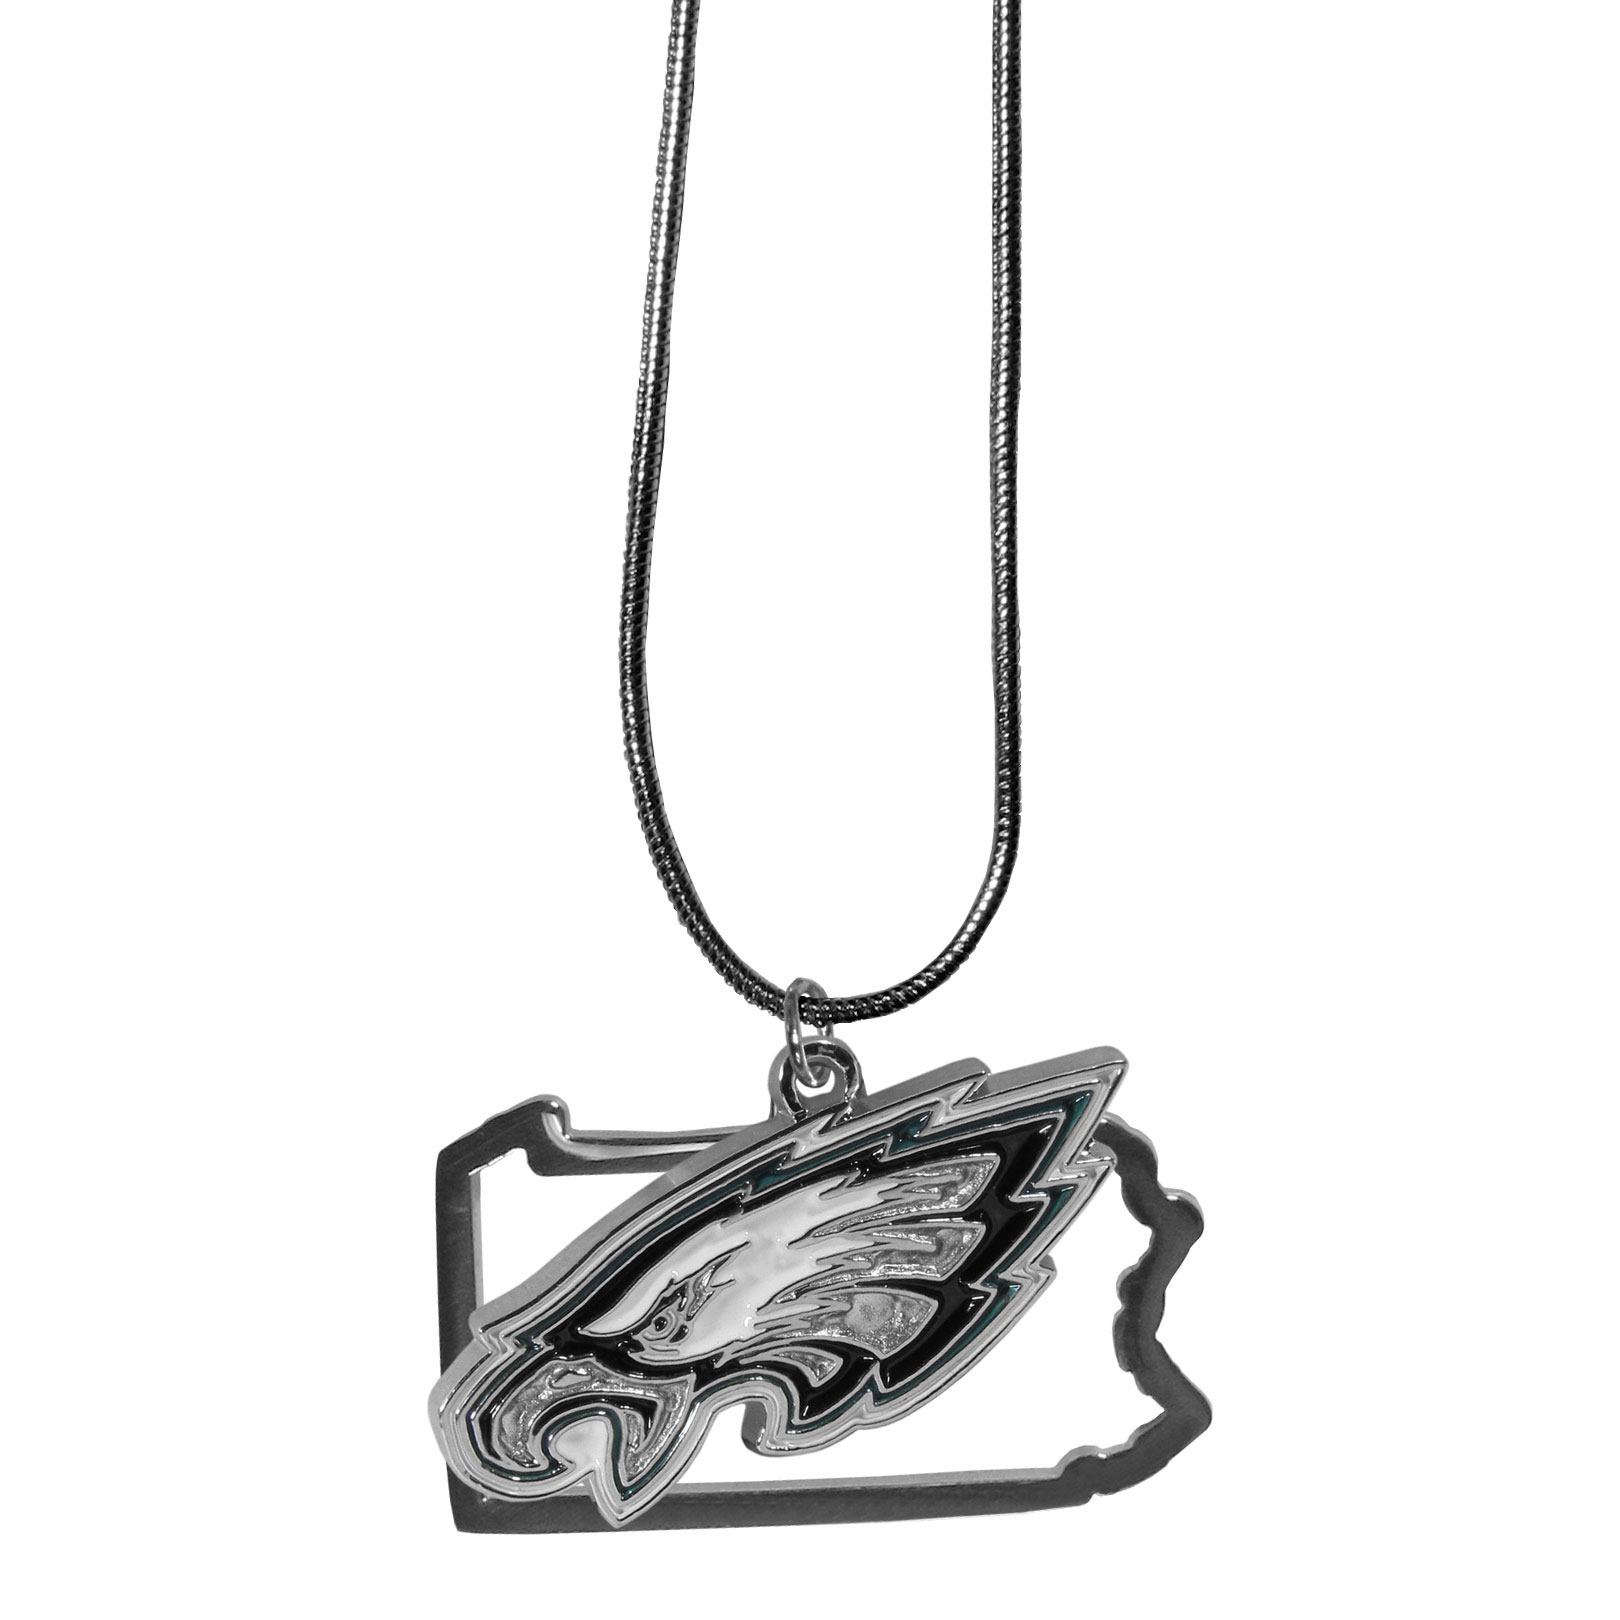 Philadelphia Eagles State Charm Necklace - Get in on the trend! State themes are a trend that just keeps getting more popular and these necklaces take the state style and give it a sporty twist with a Philadelphia Eagles added to the state outline charm. The come on a snake chain that is 22 inches long.